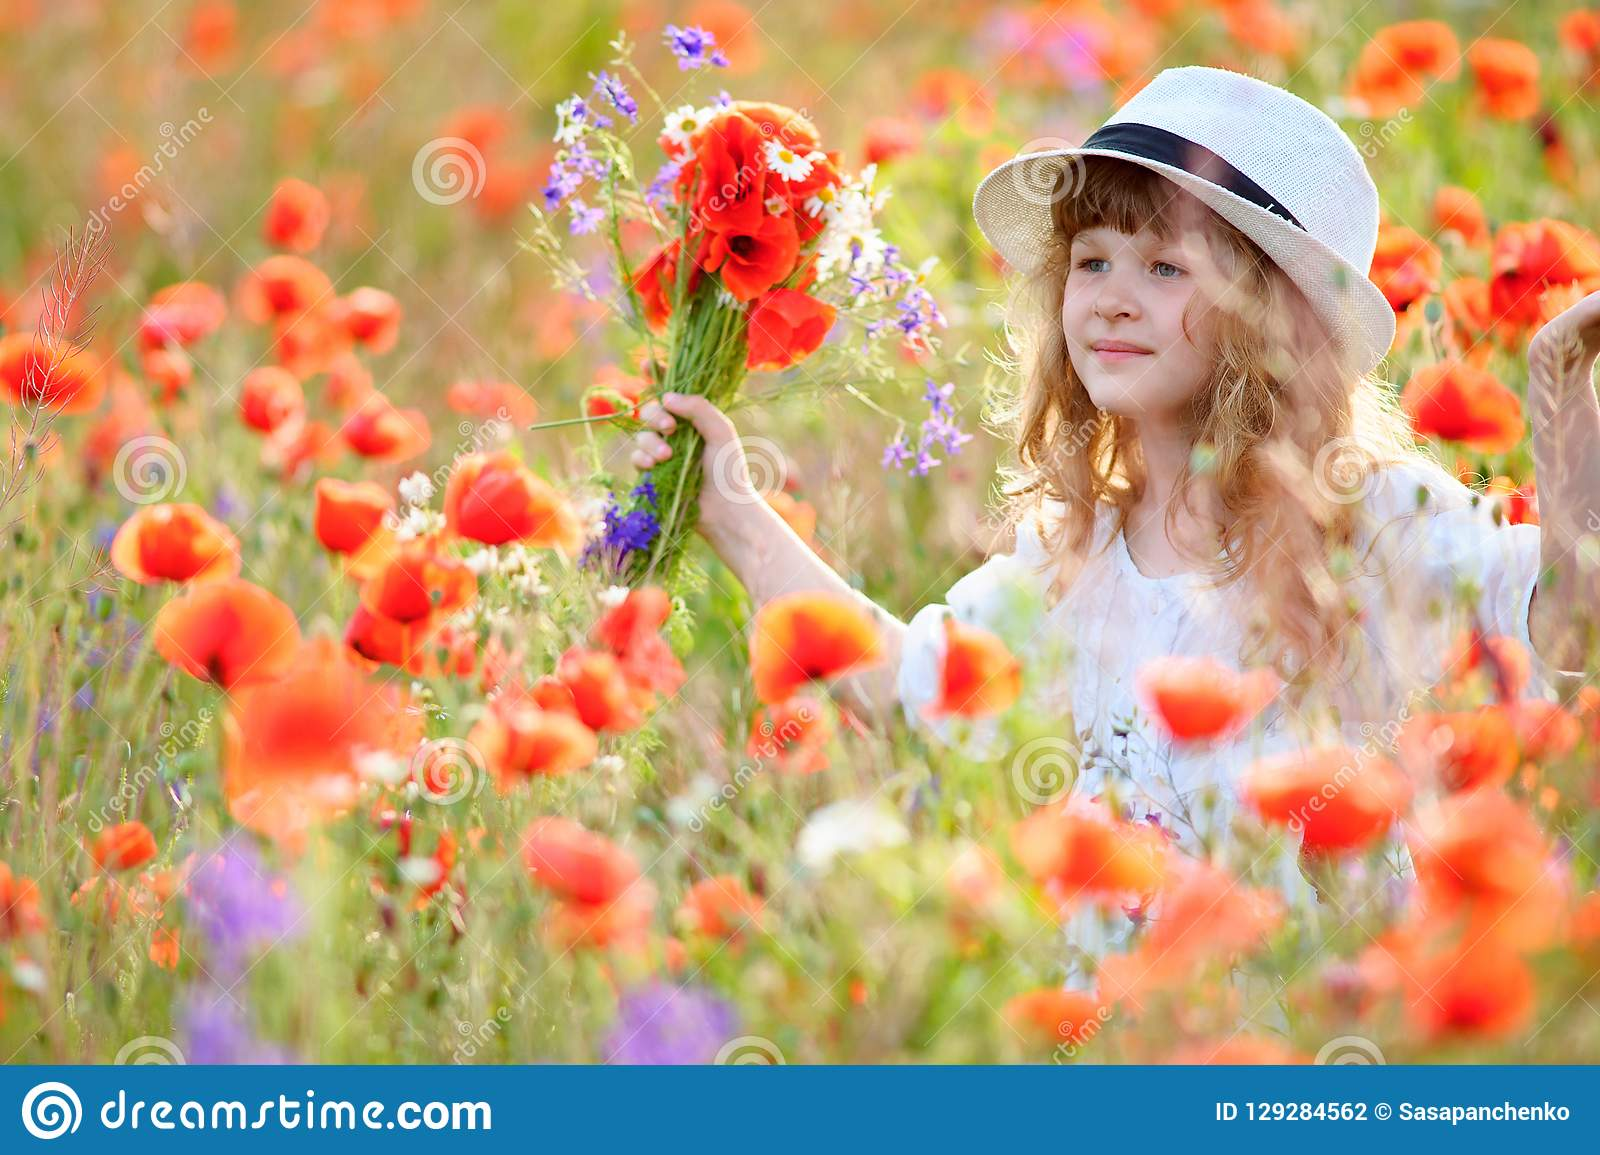 Adorable little girl in white dress playing in poppy flower field. Child picking red poppies. Toddler kid having fun in summer me